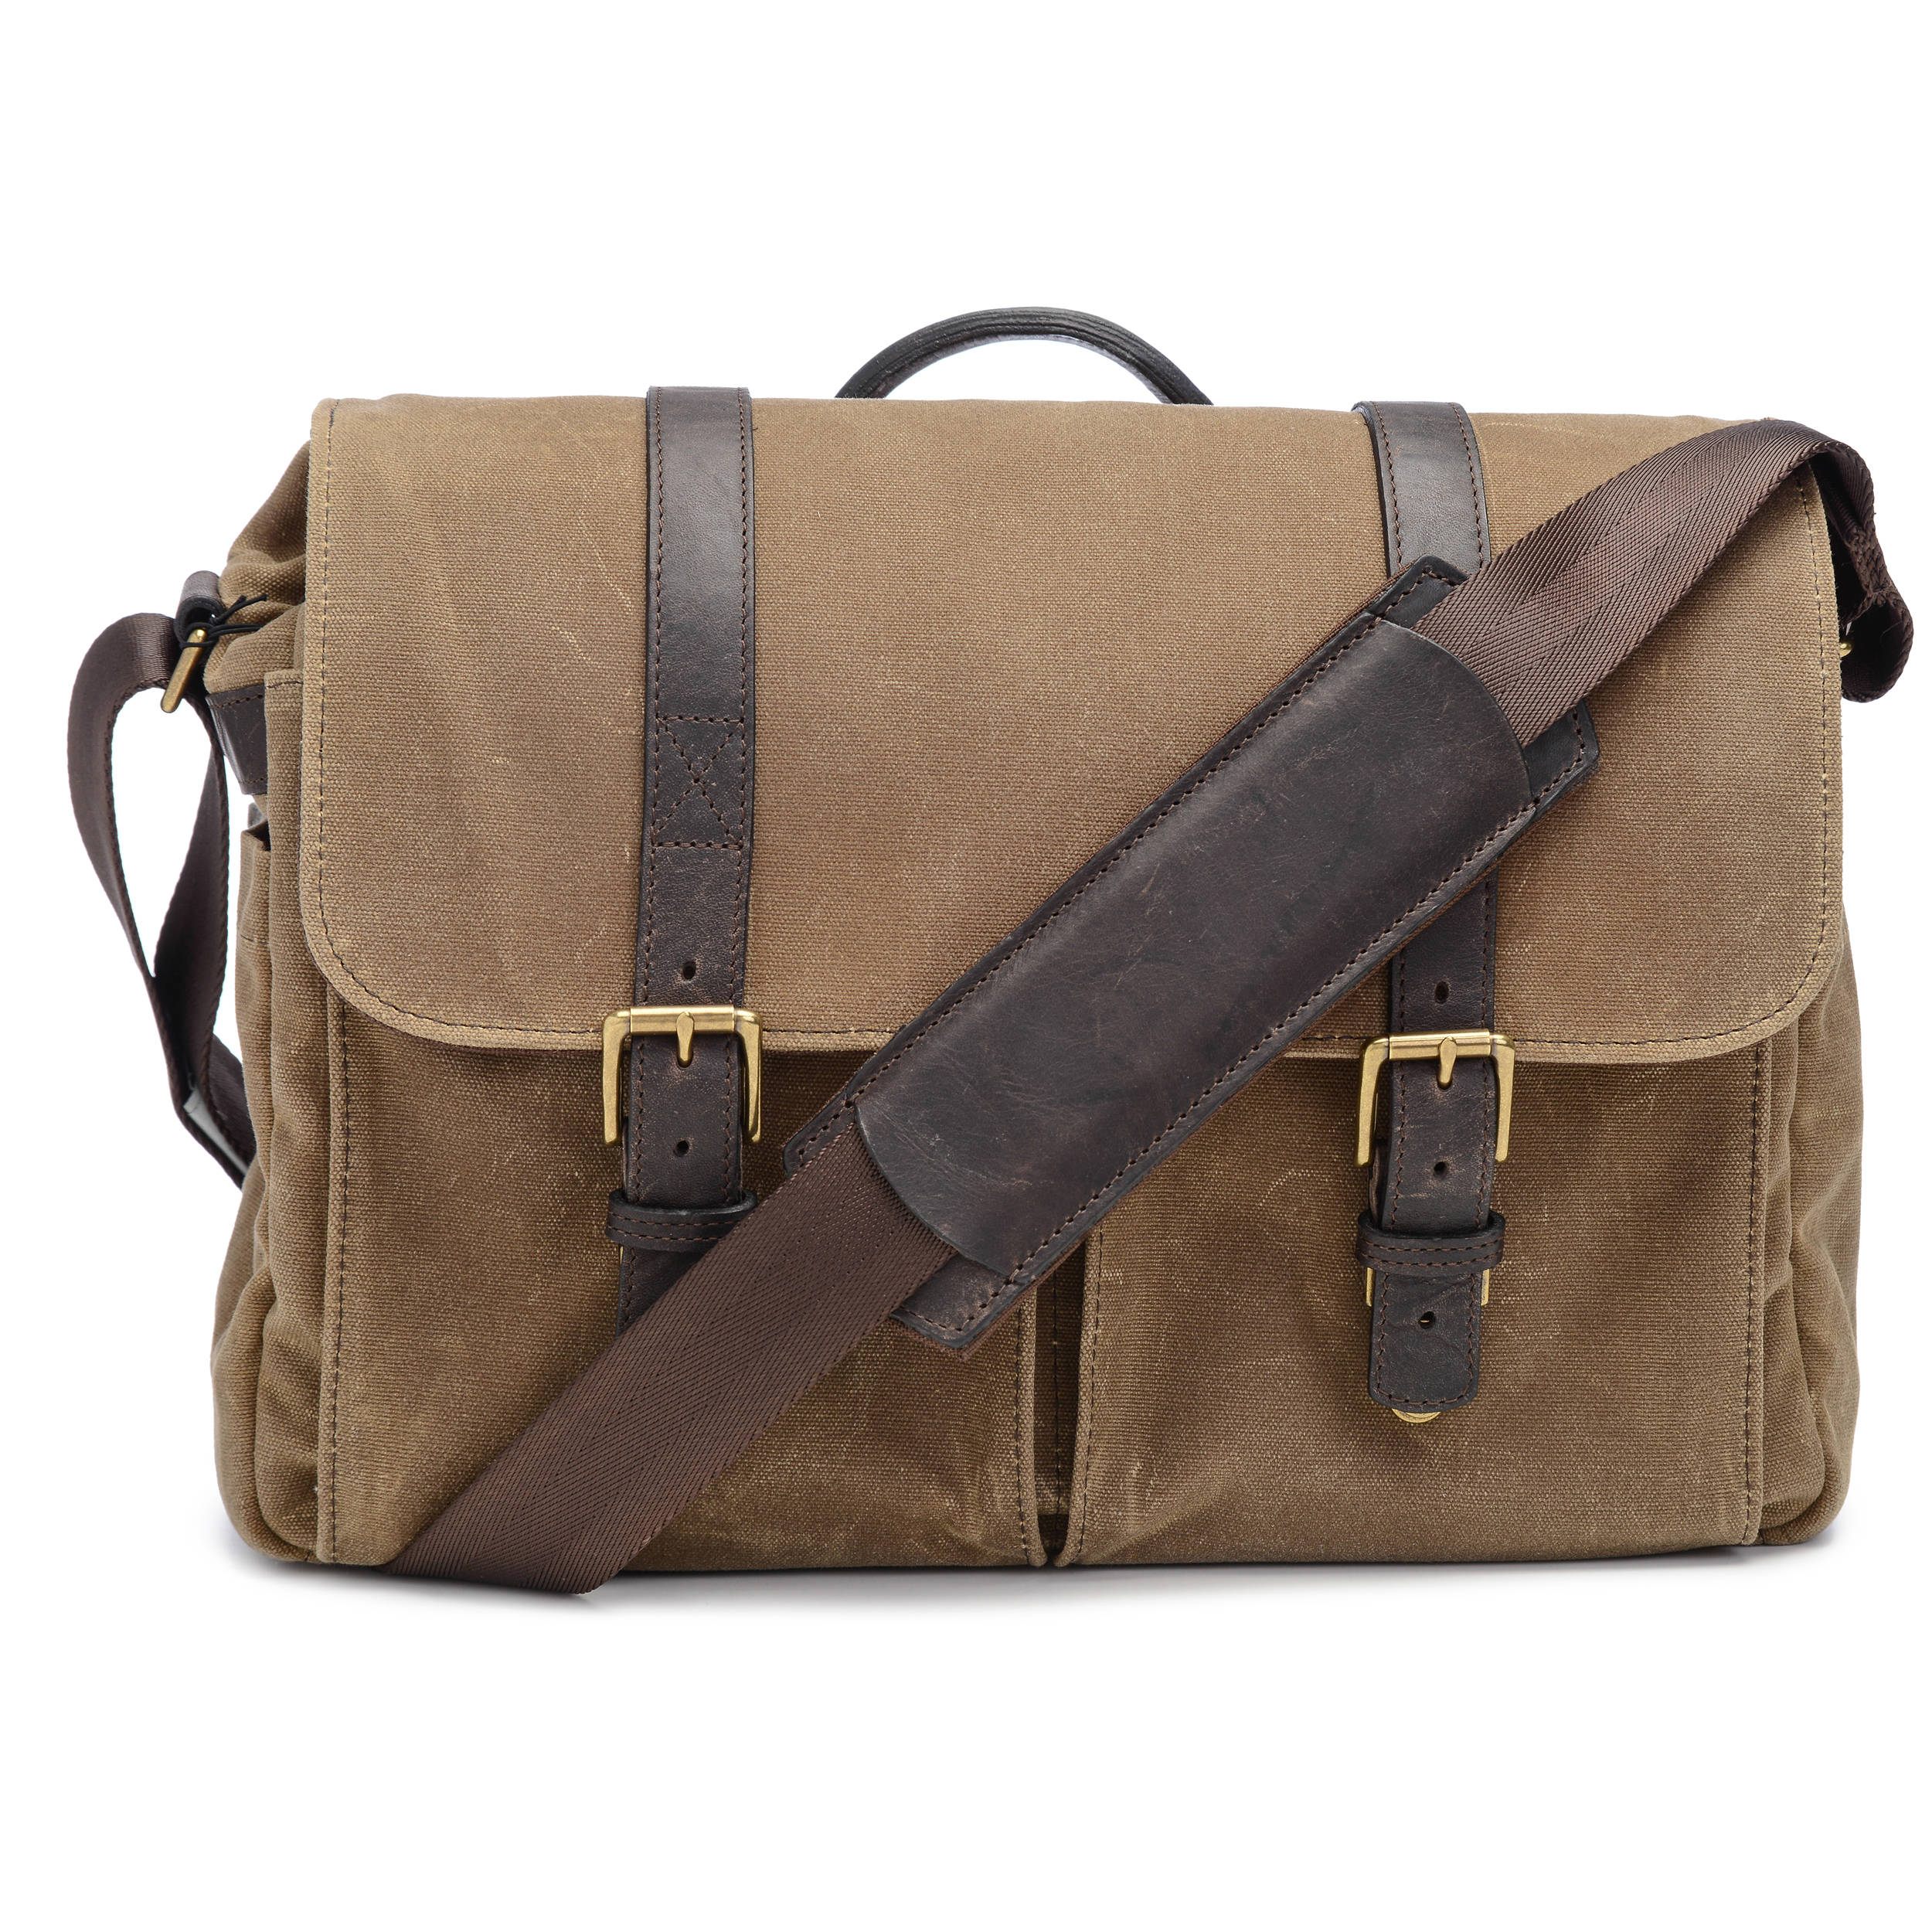 ONA Brixton Camera/Laptop Messenger Bag ONA5-013RT B&H Photo